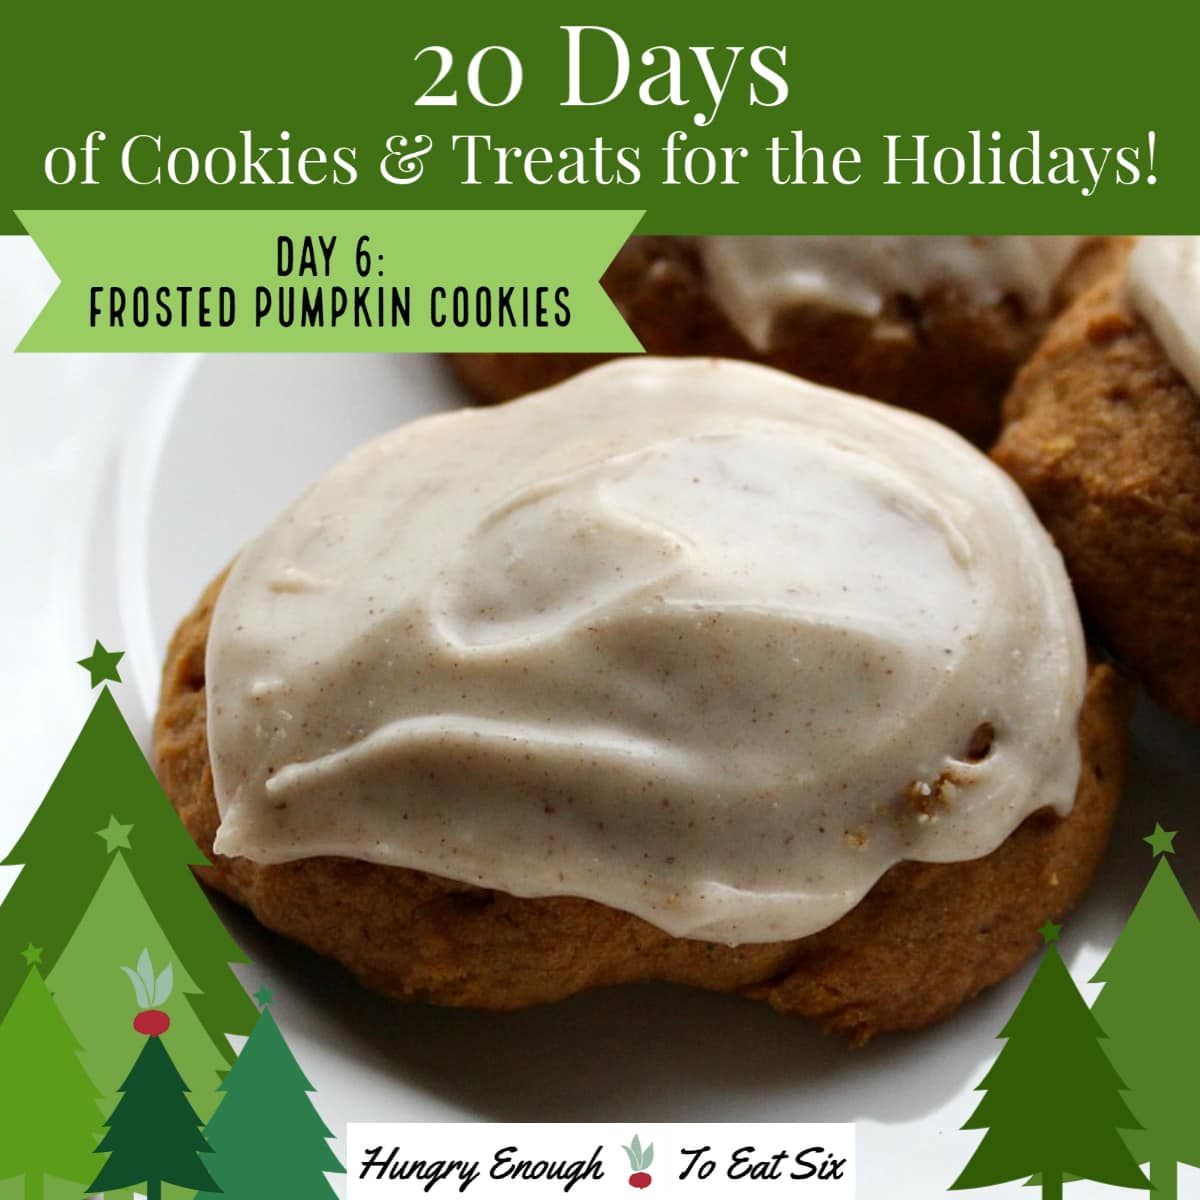 Frosted dark cookie